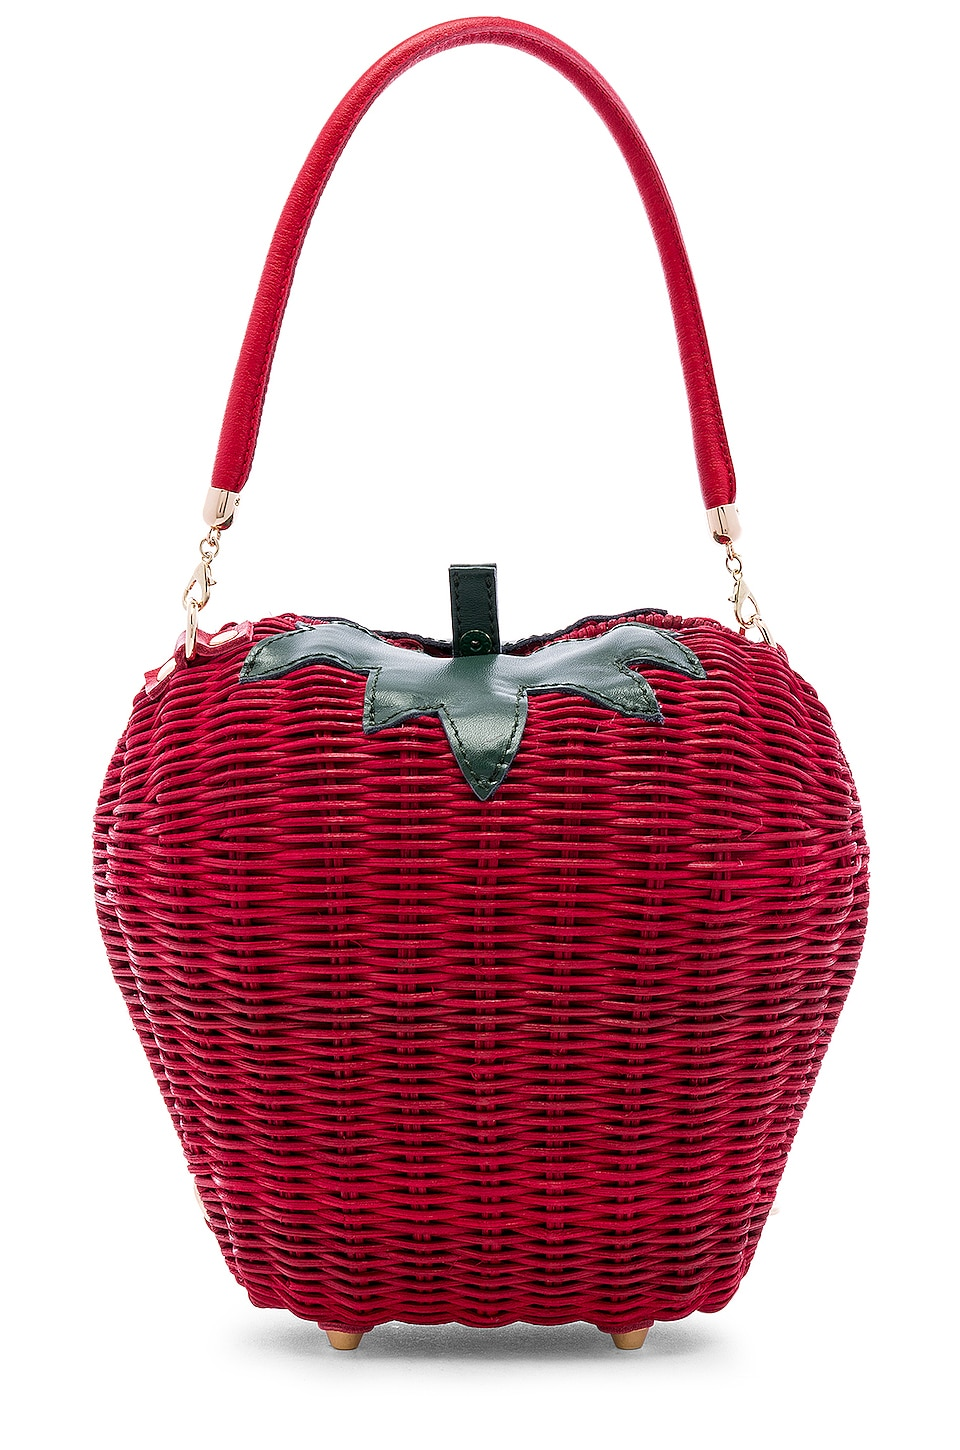 X REVOLVE Rouge Basket Bag